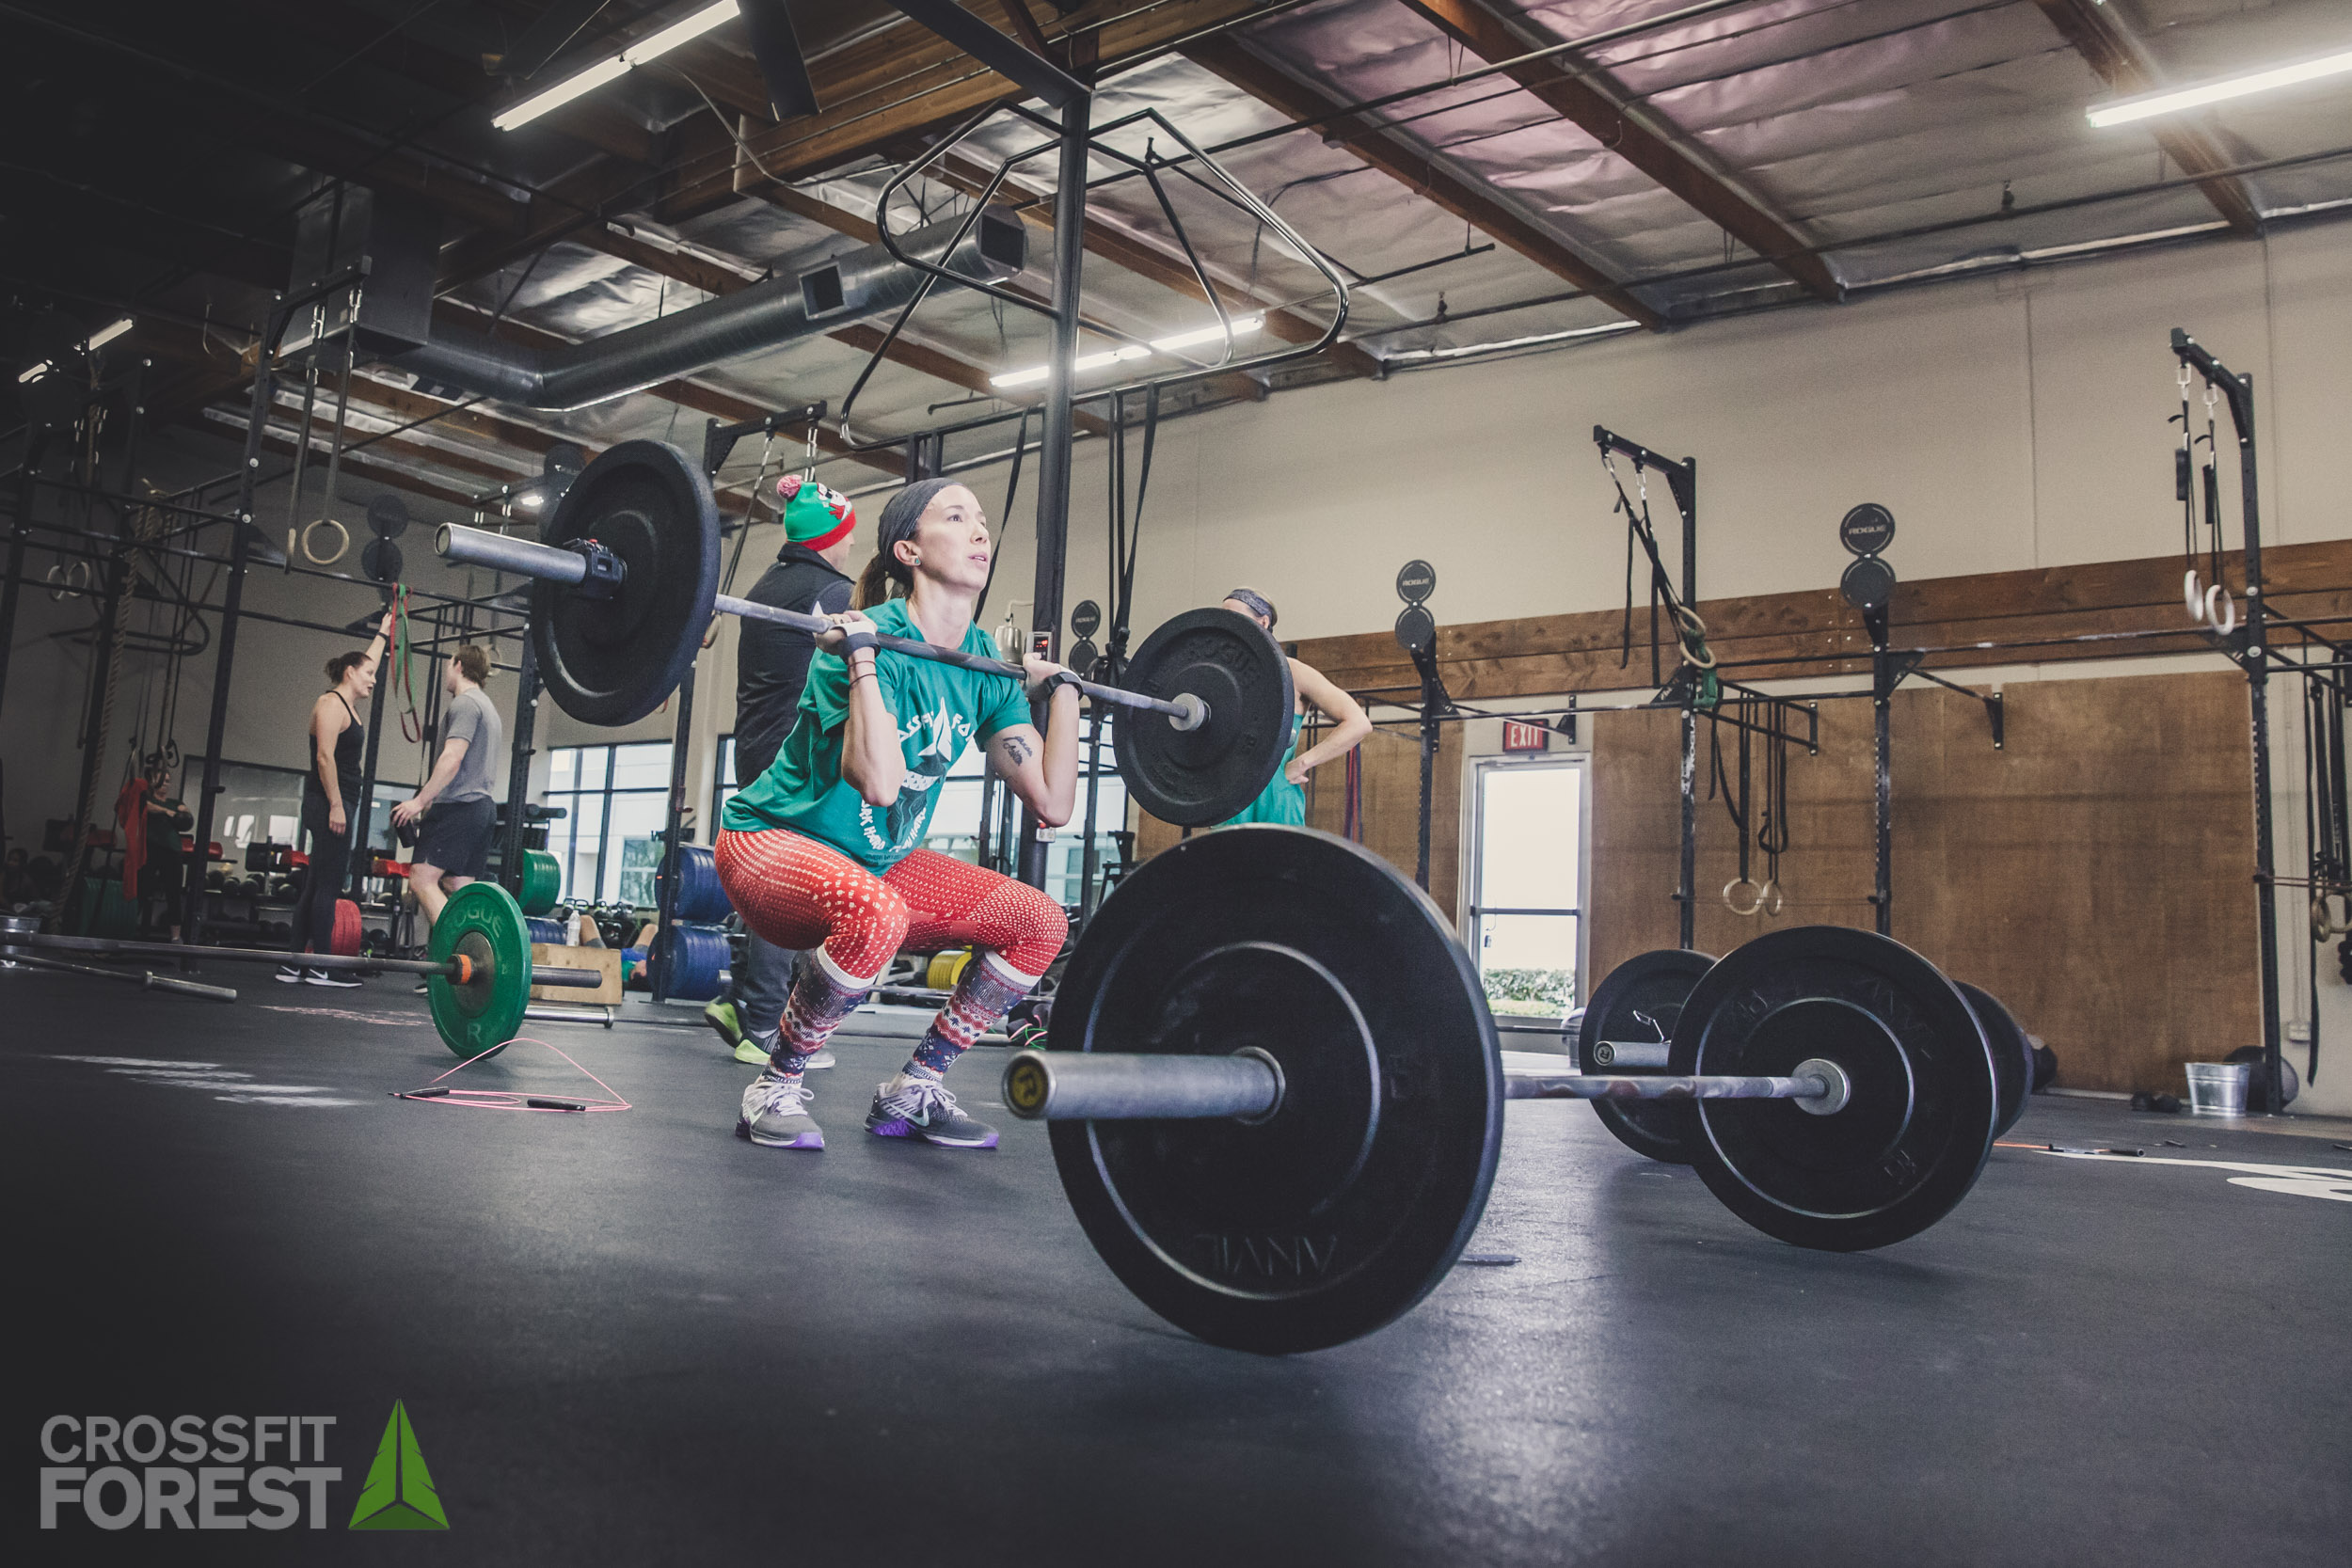 CrossFit Forest 12 Days of Xmas